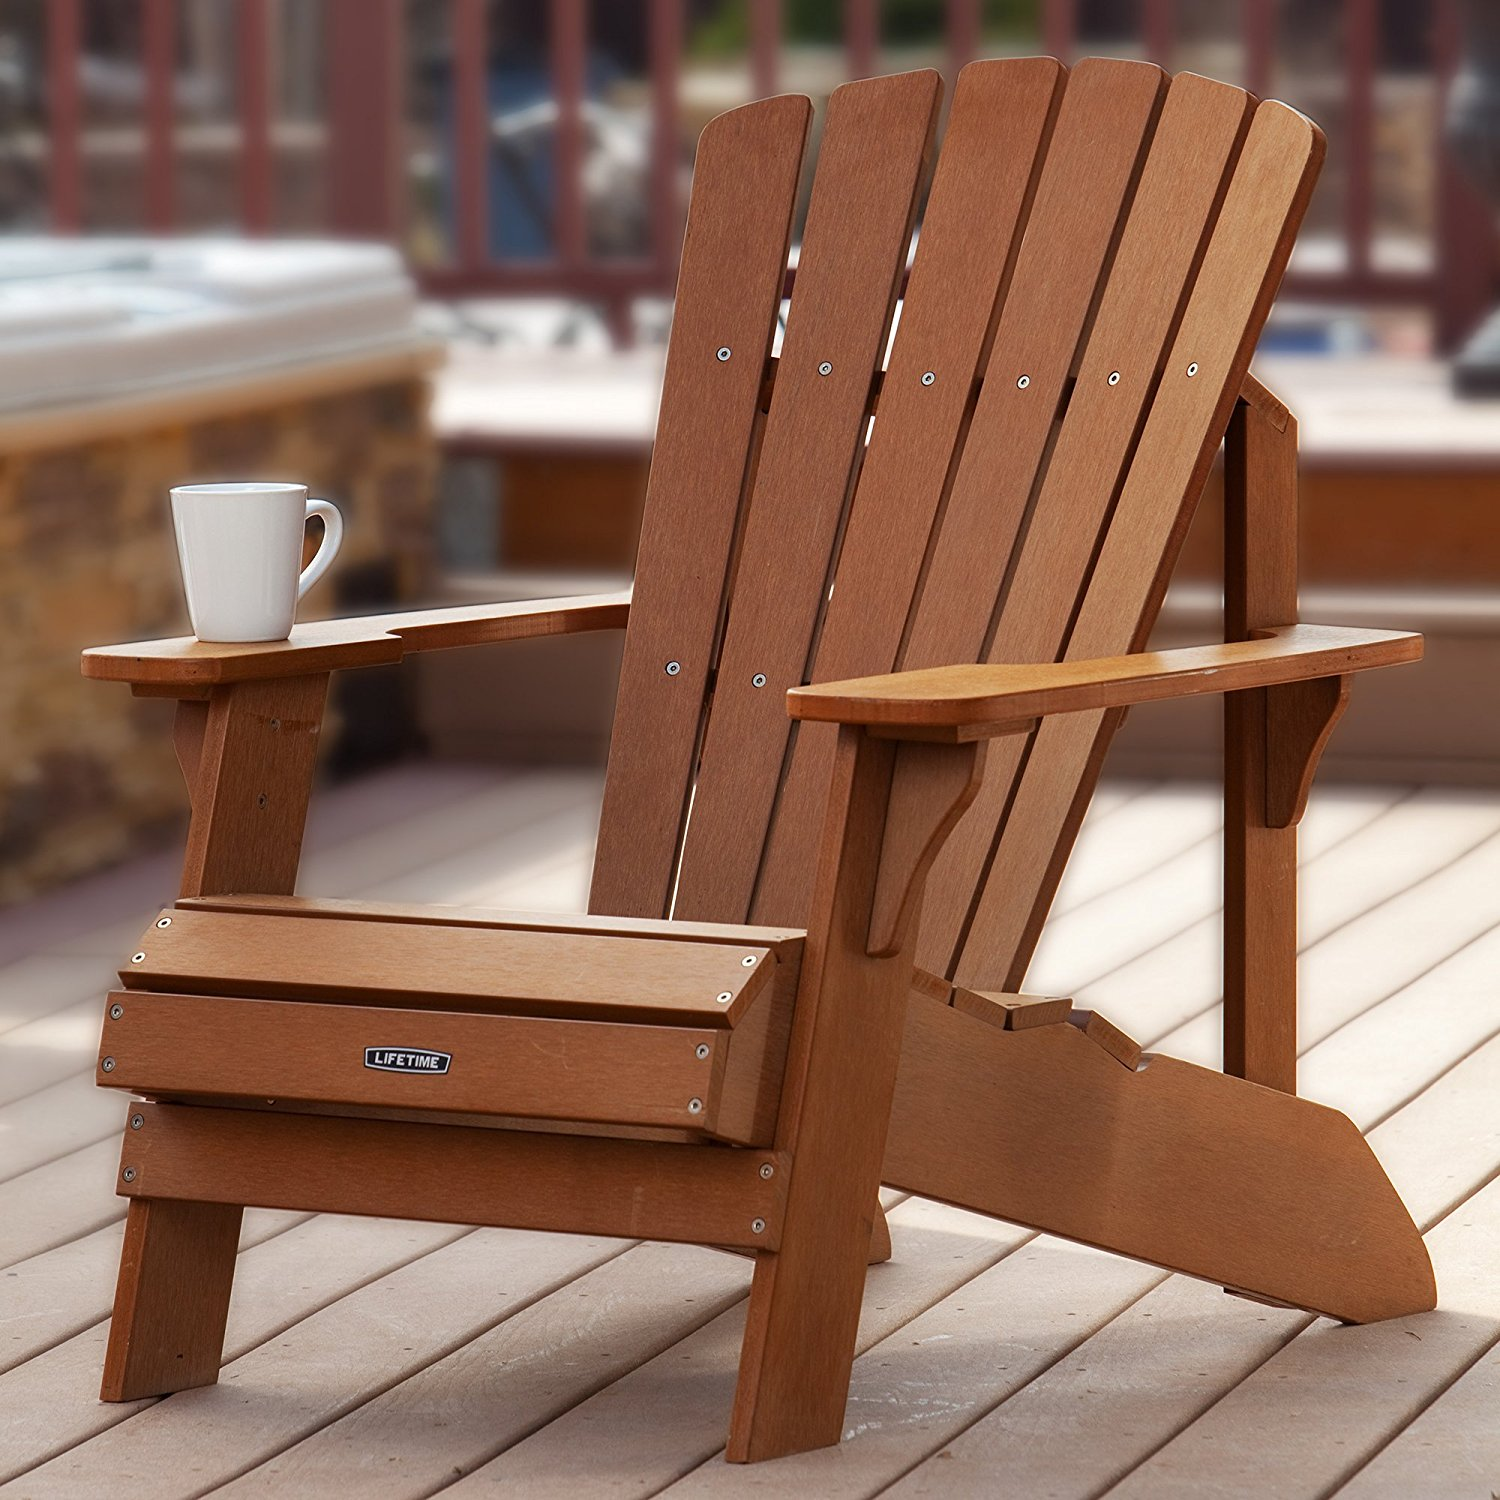 Poly Resin Adirondack Chairs. Reviews And Buyer's Guide